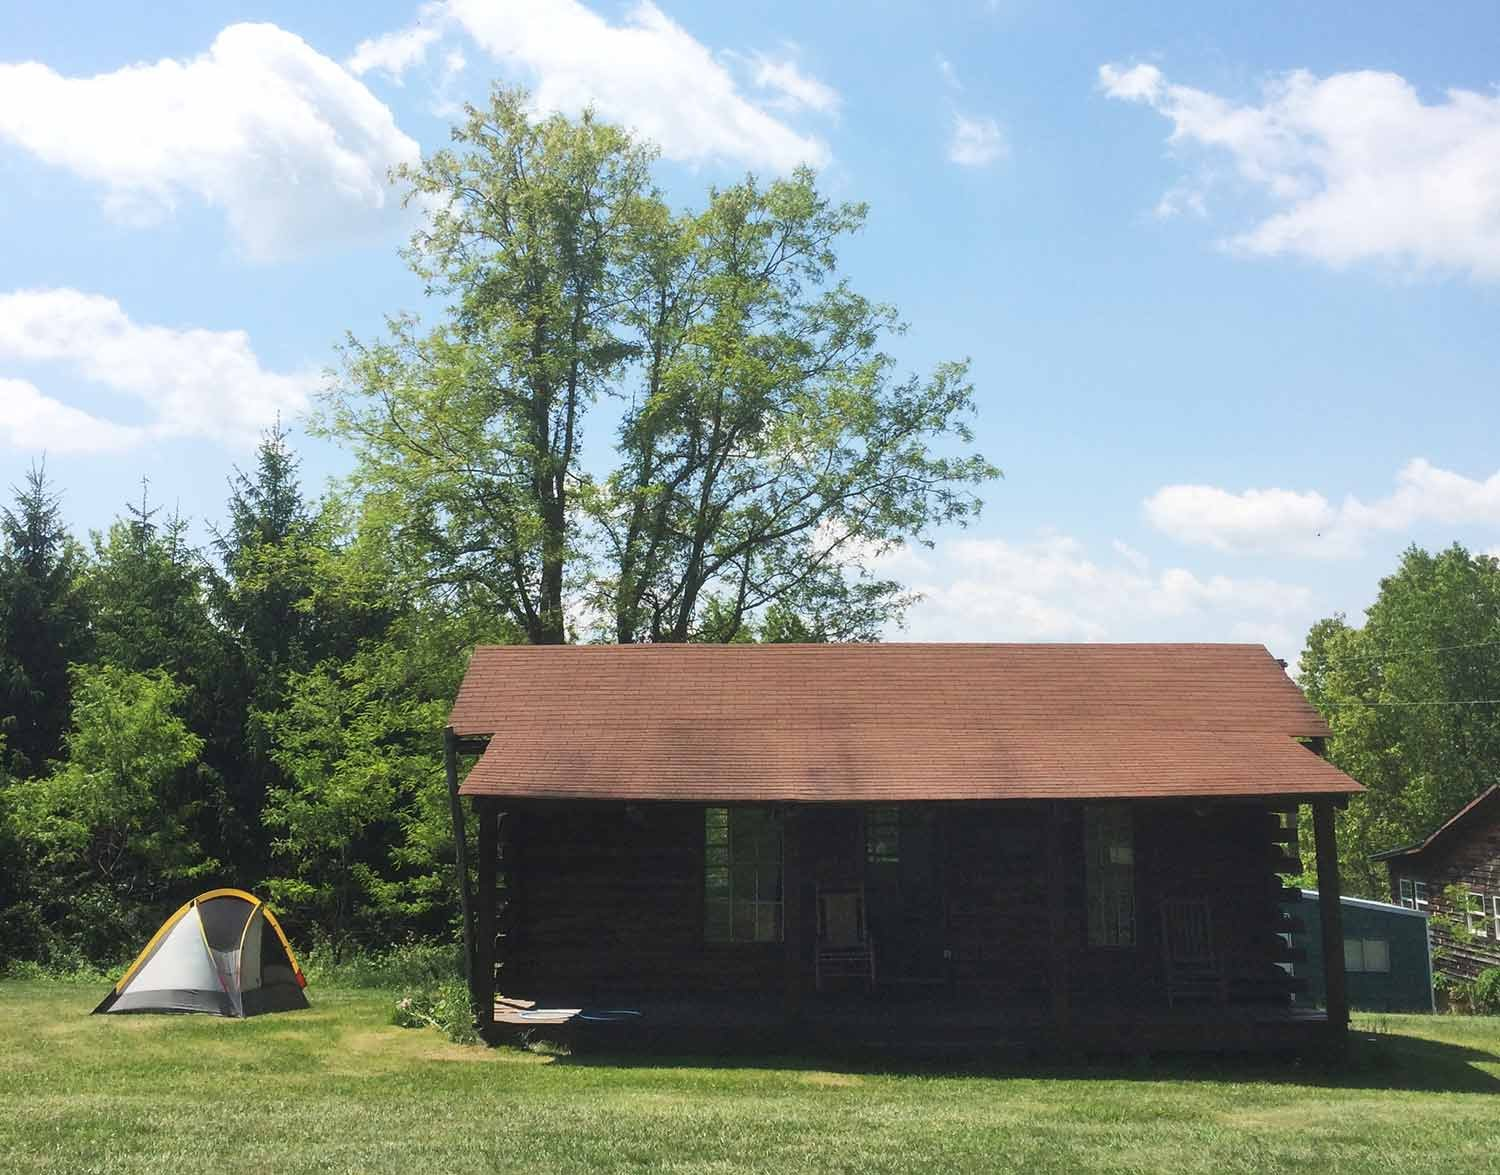 old, authentic cabins/buildings to show visitors how people in Appalachia used to live